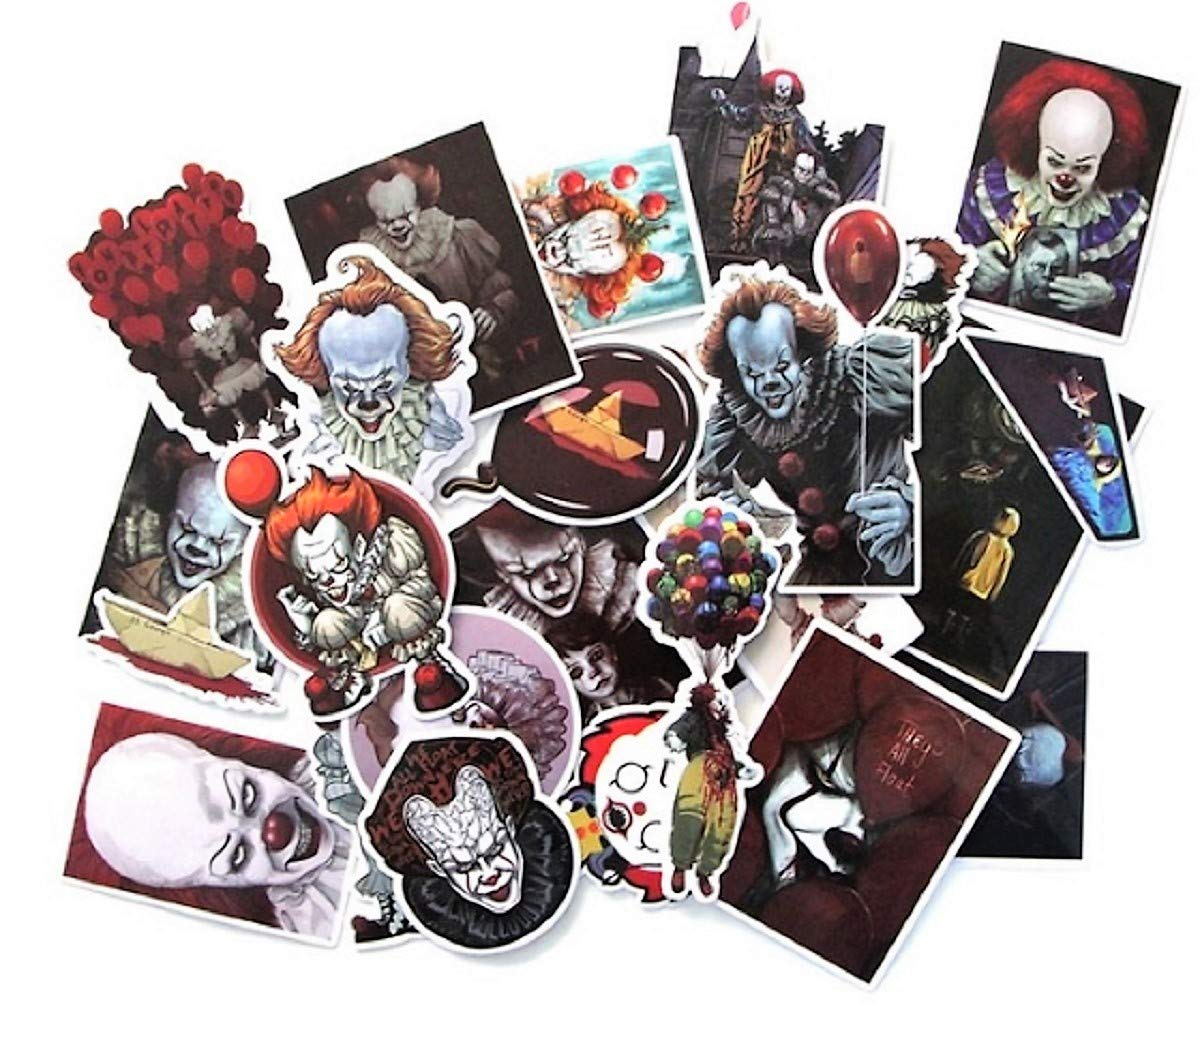 Stephen King/'s IT Penny Wise Decal Stickers Assorted Lot of 24 Pieces